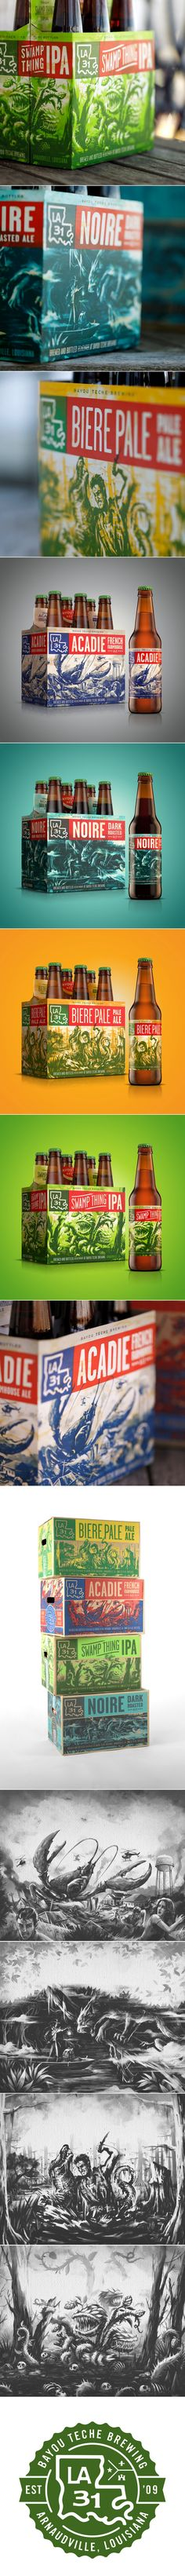 A Beer Straight From the Bayou — The Dieline - Branding & Packaging Design